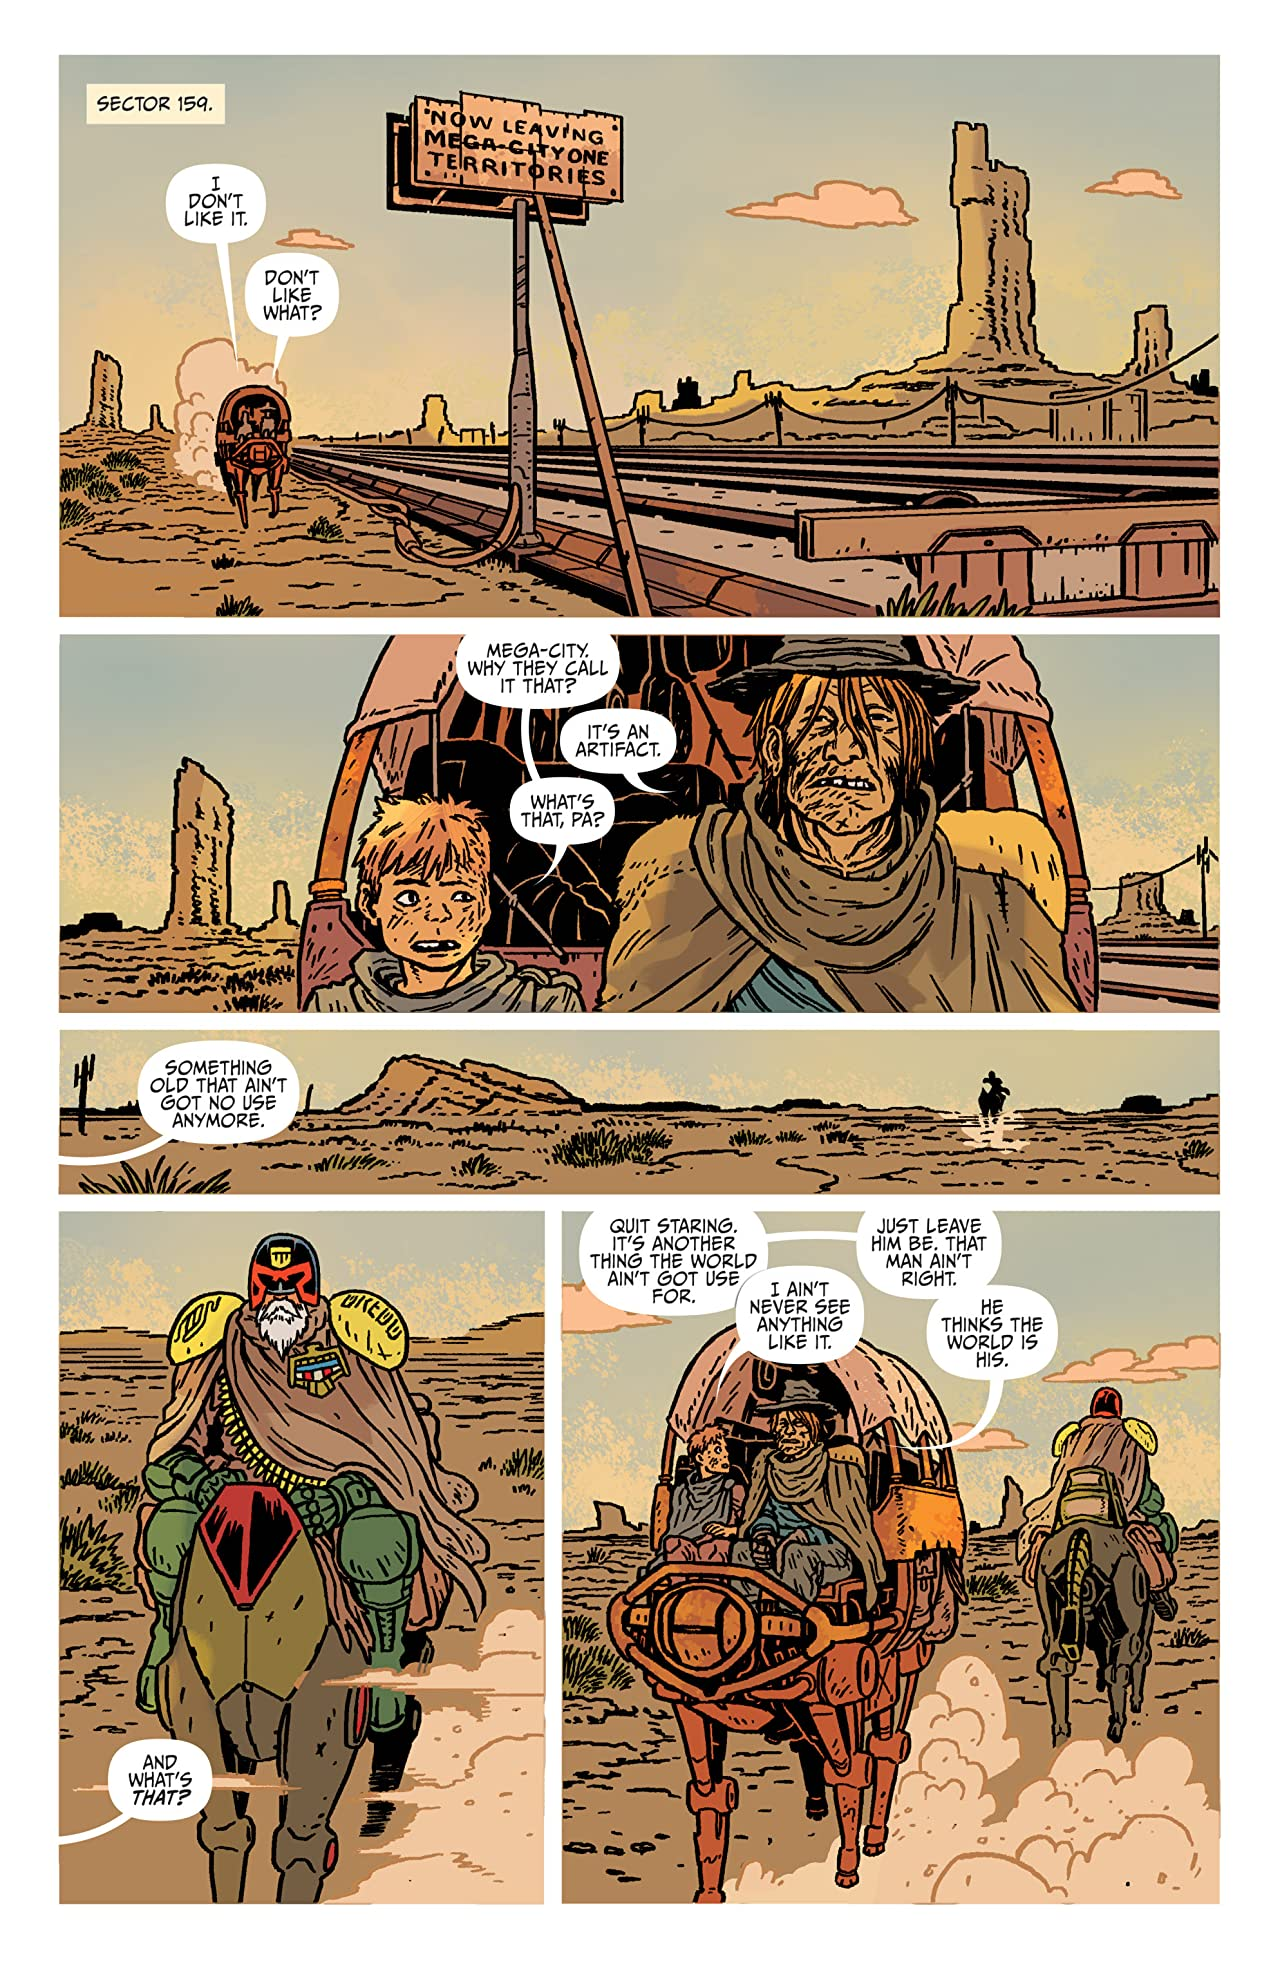 Judge Dredd: The Blessed Earth #1